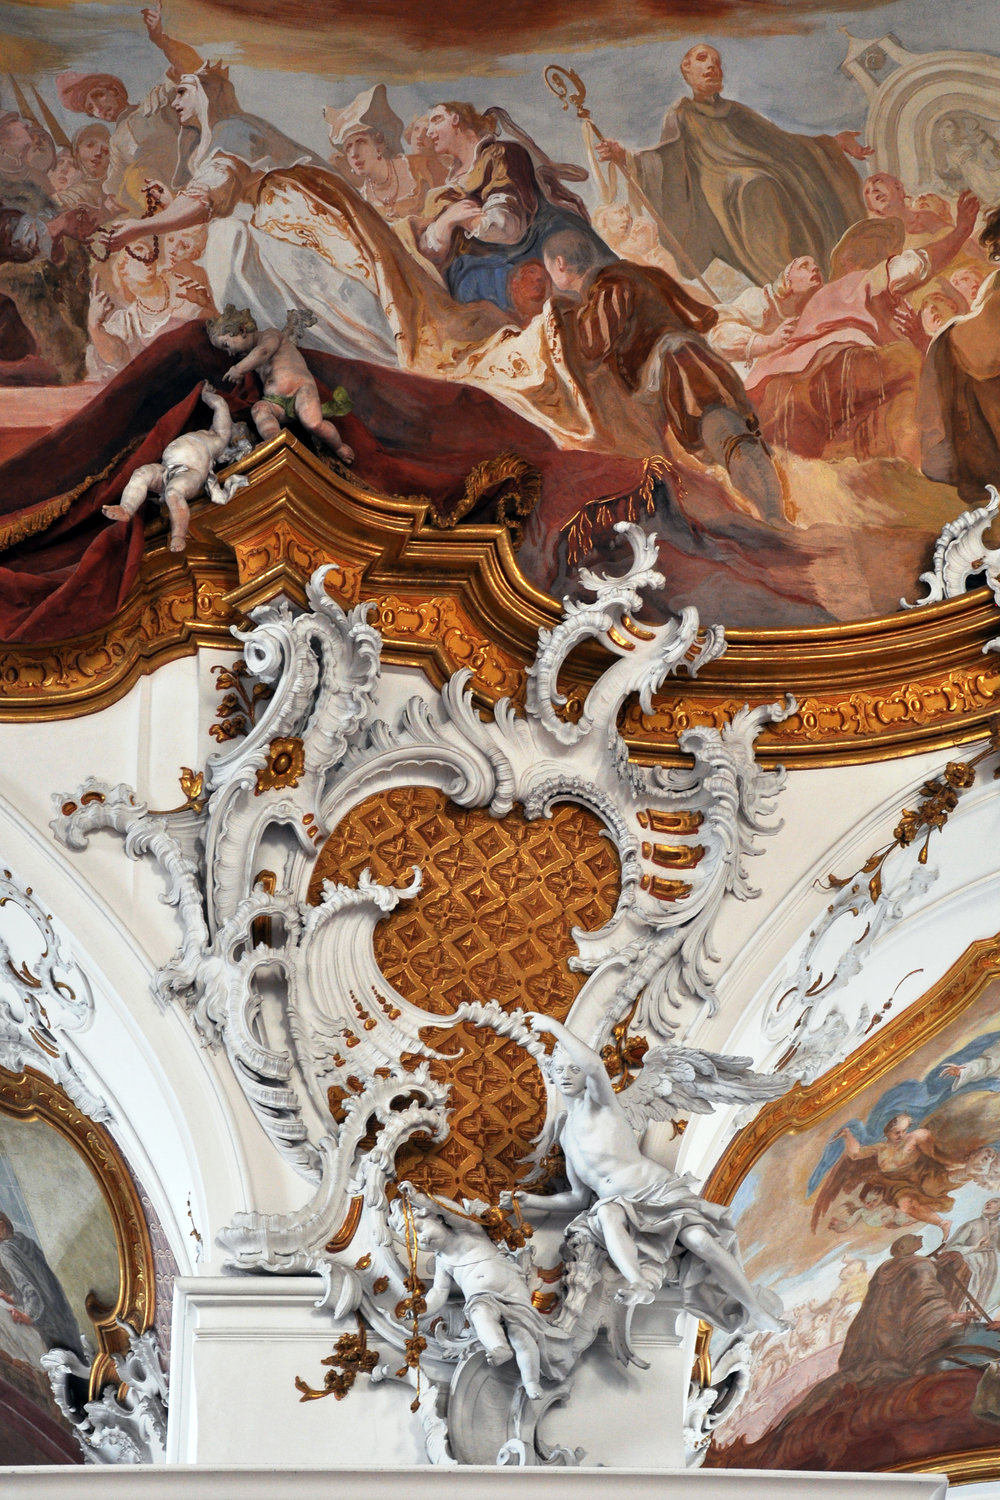 Integrated rococo carving, stucco and fresco at Zwiefalten